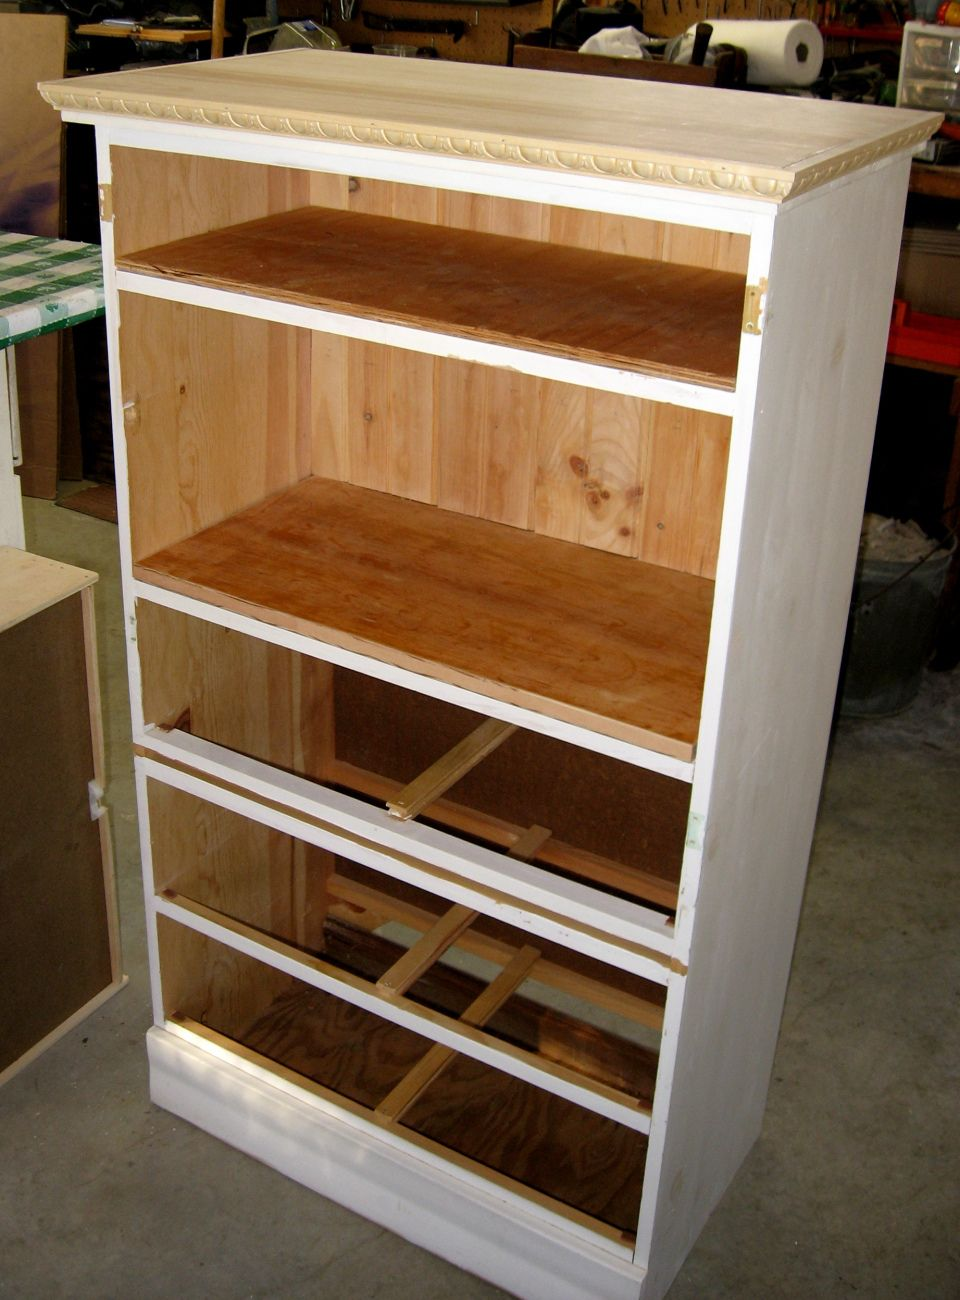 Woodworking Plans Stereo Cabinet